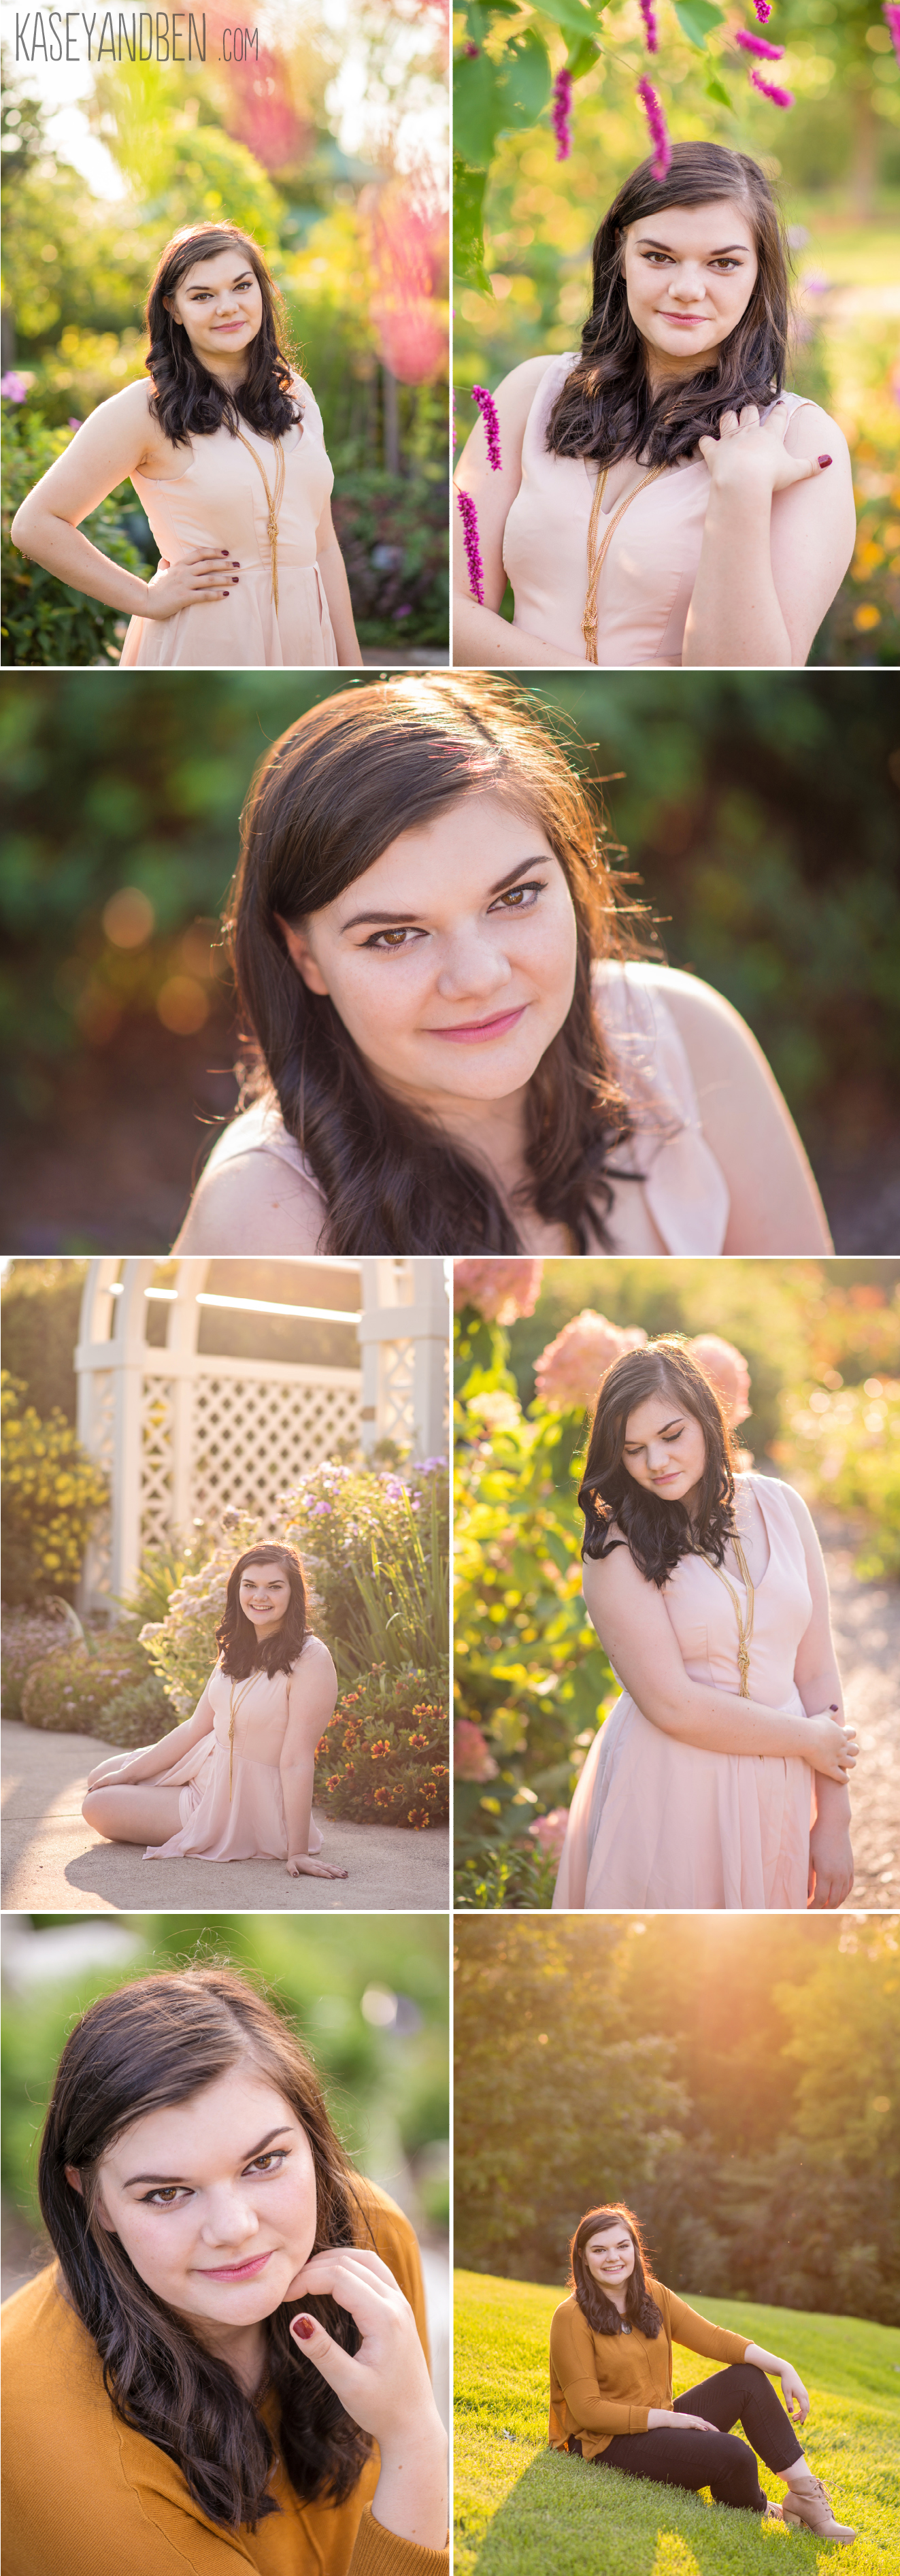 Green-Bay-Botanical-Gardens-Senior-Photos-Photographer-Preble-High-School-Senior-Portraits